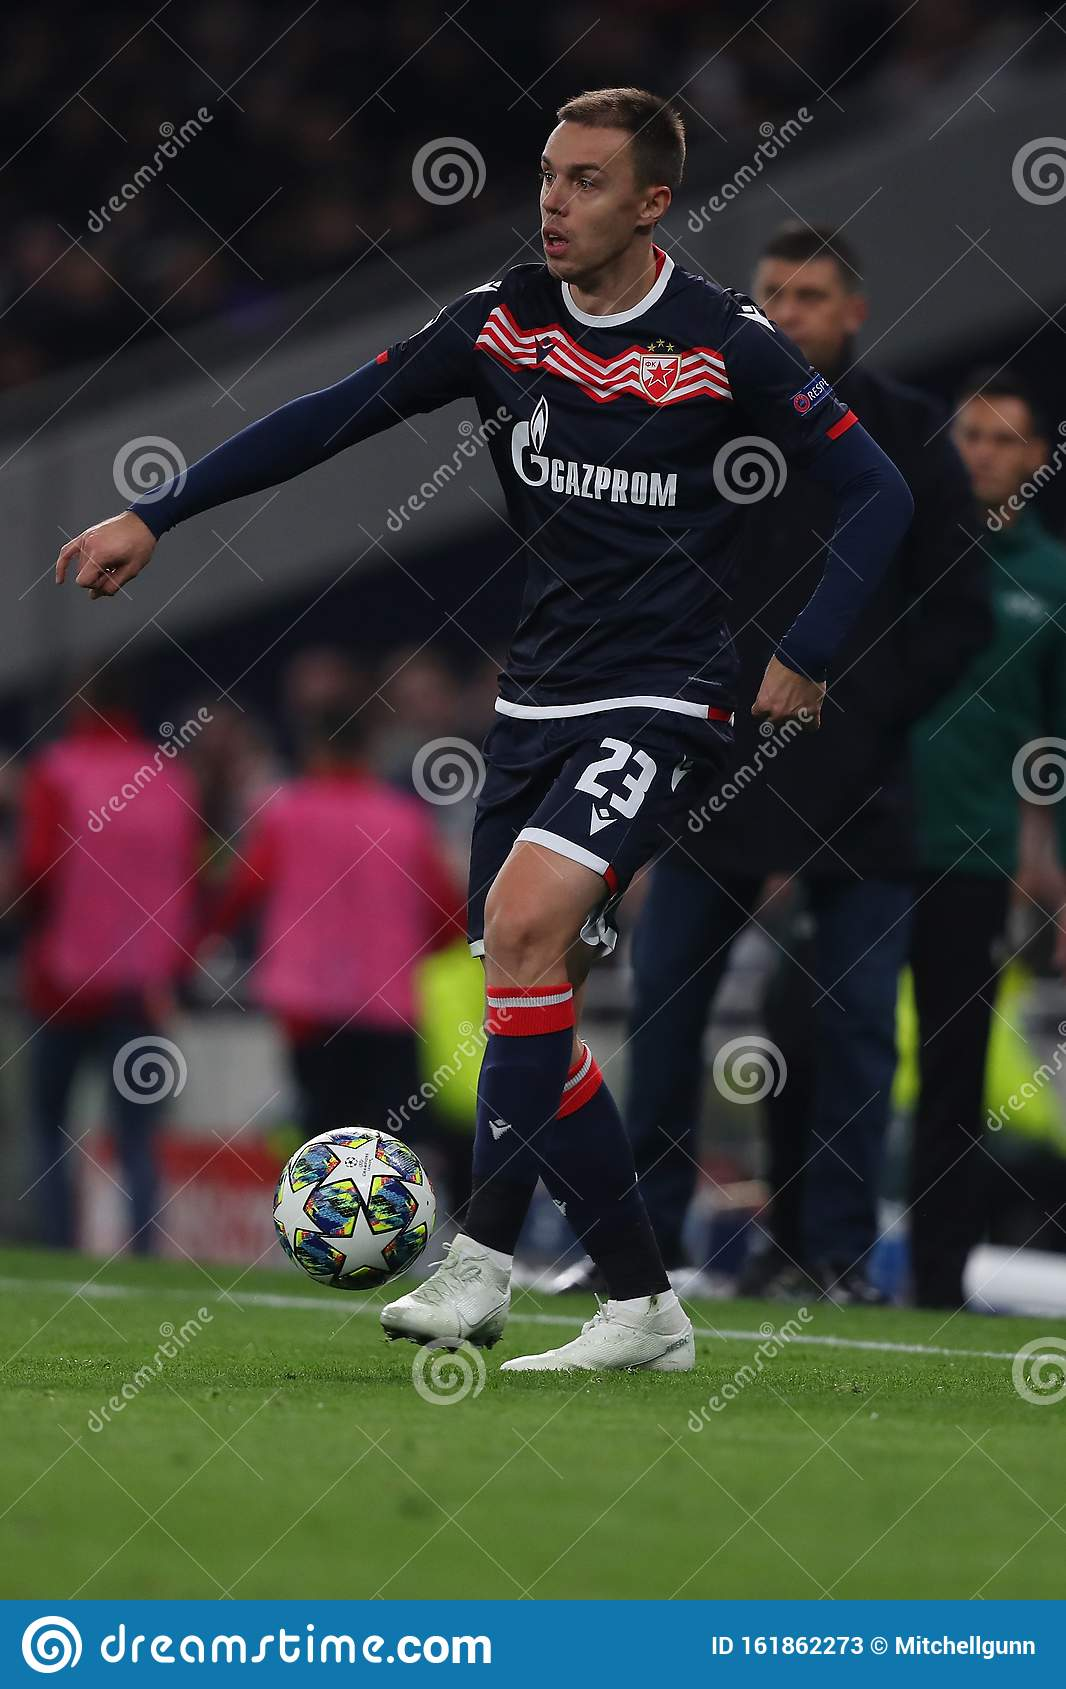 tottenham hotspur v red star belgrade uefa champions league group b tottenham hotspur stadium london england editorial stock photo image of boots kick 161862273 dreamstime com